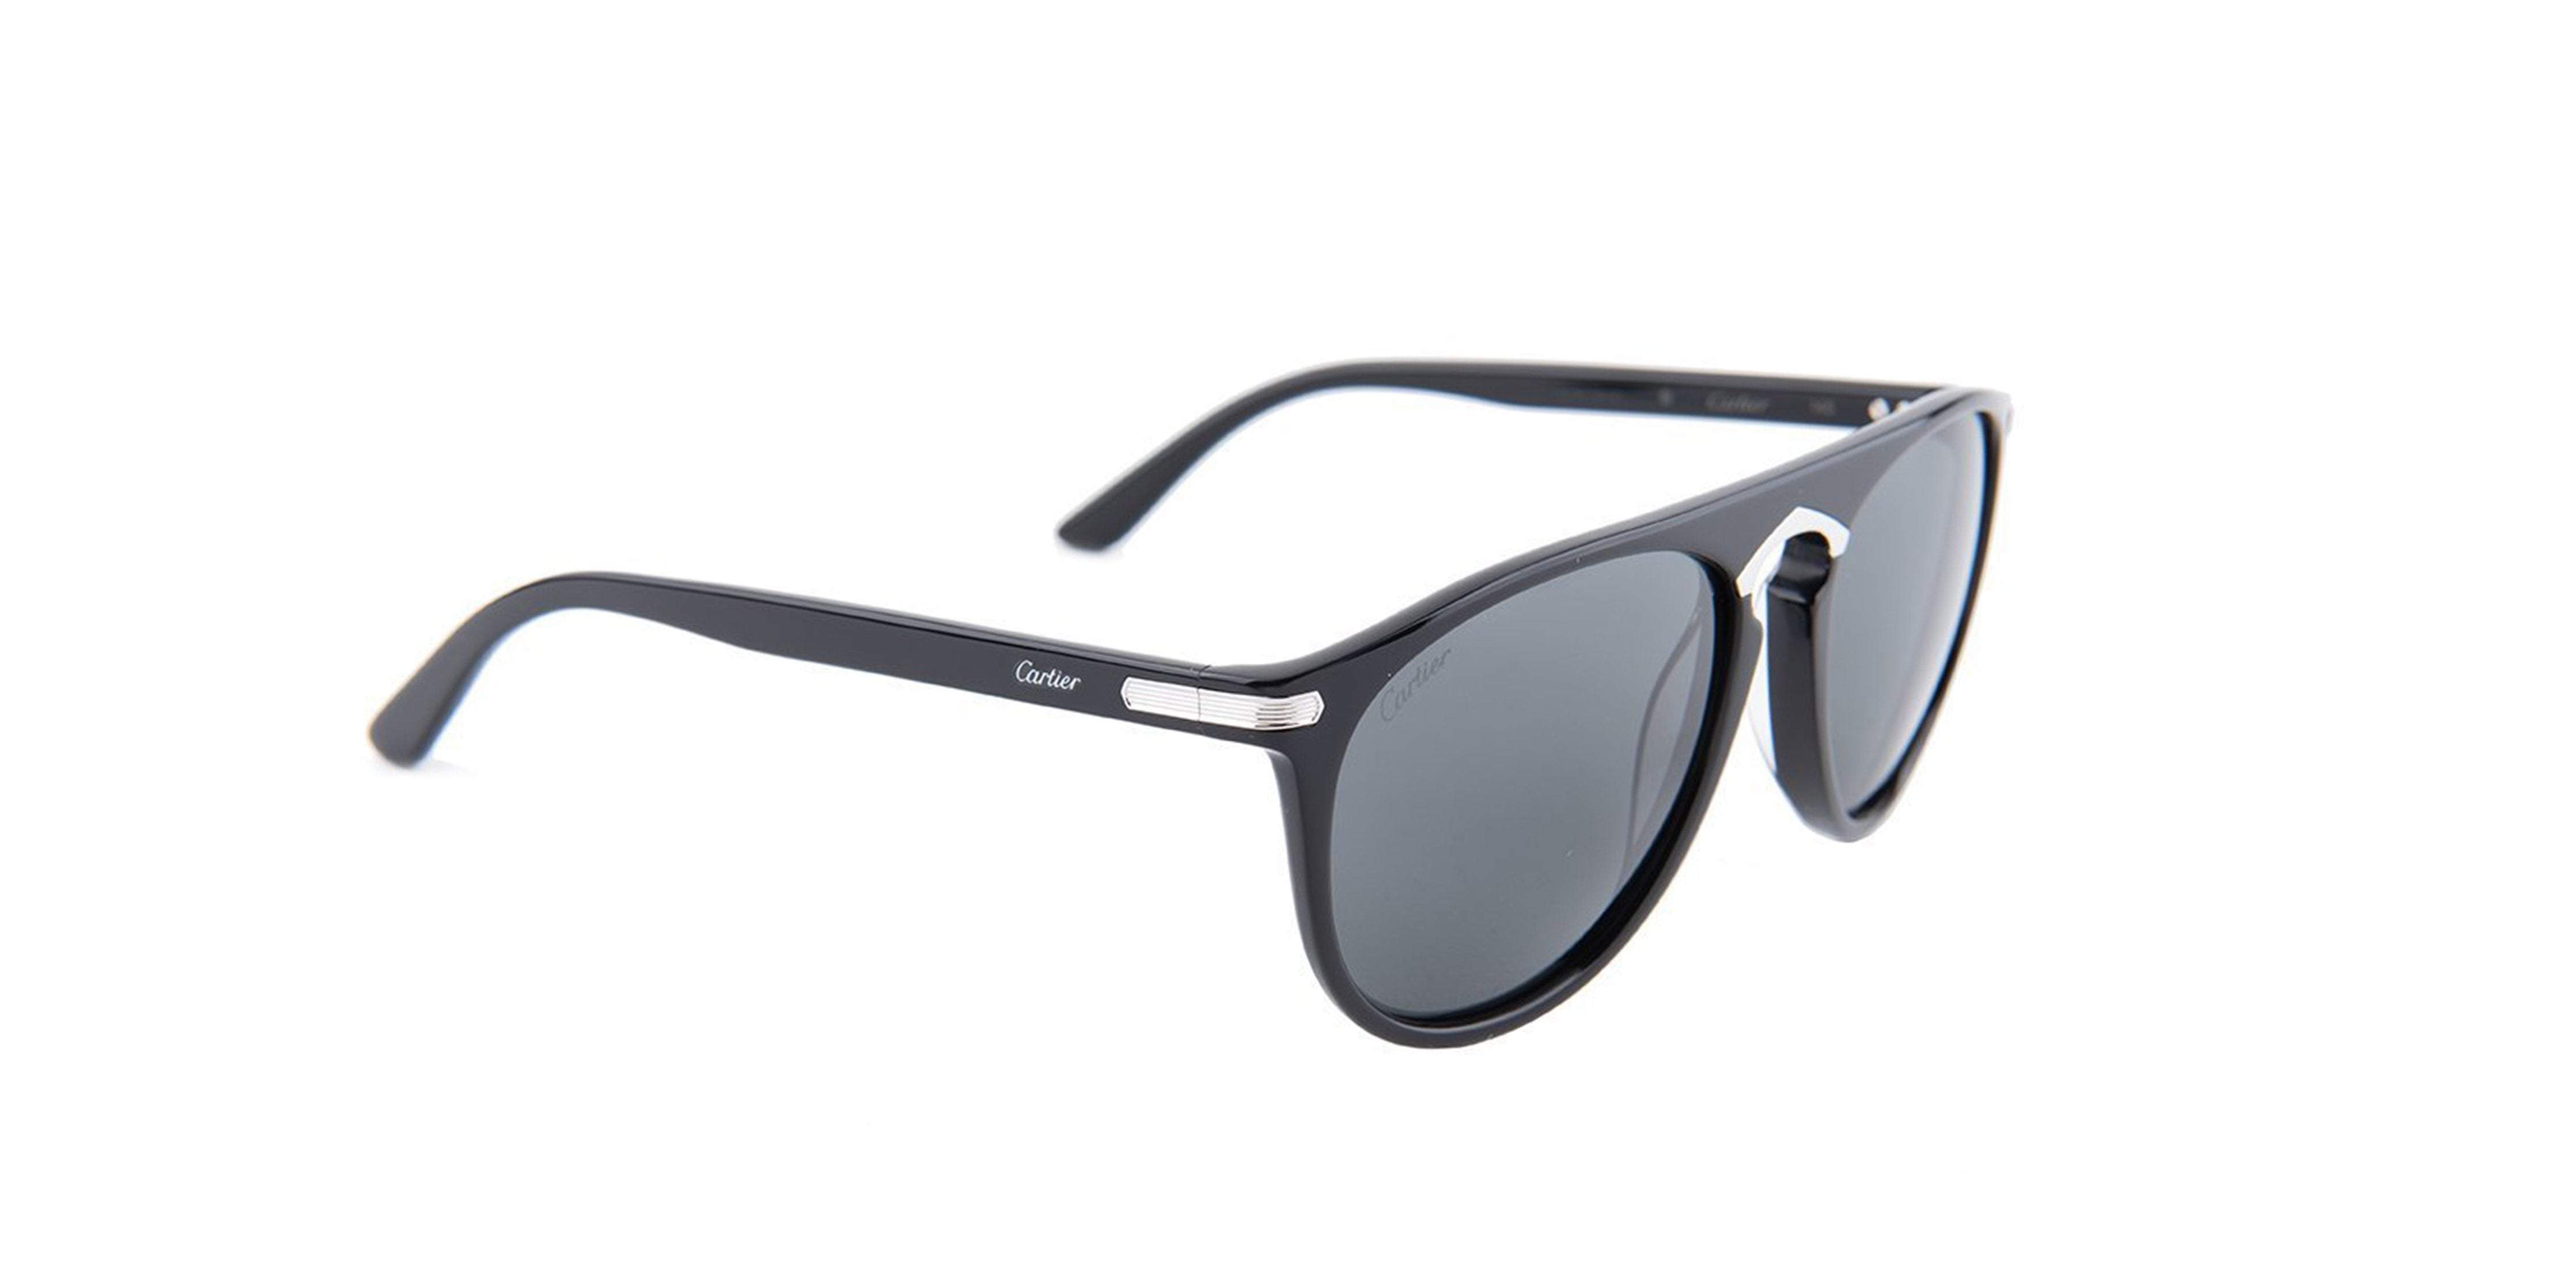 Cartier - CT0013S Shiny Black Women Sunglasses - 56mm-Sunglasses-Designer Eyes